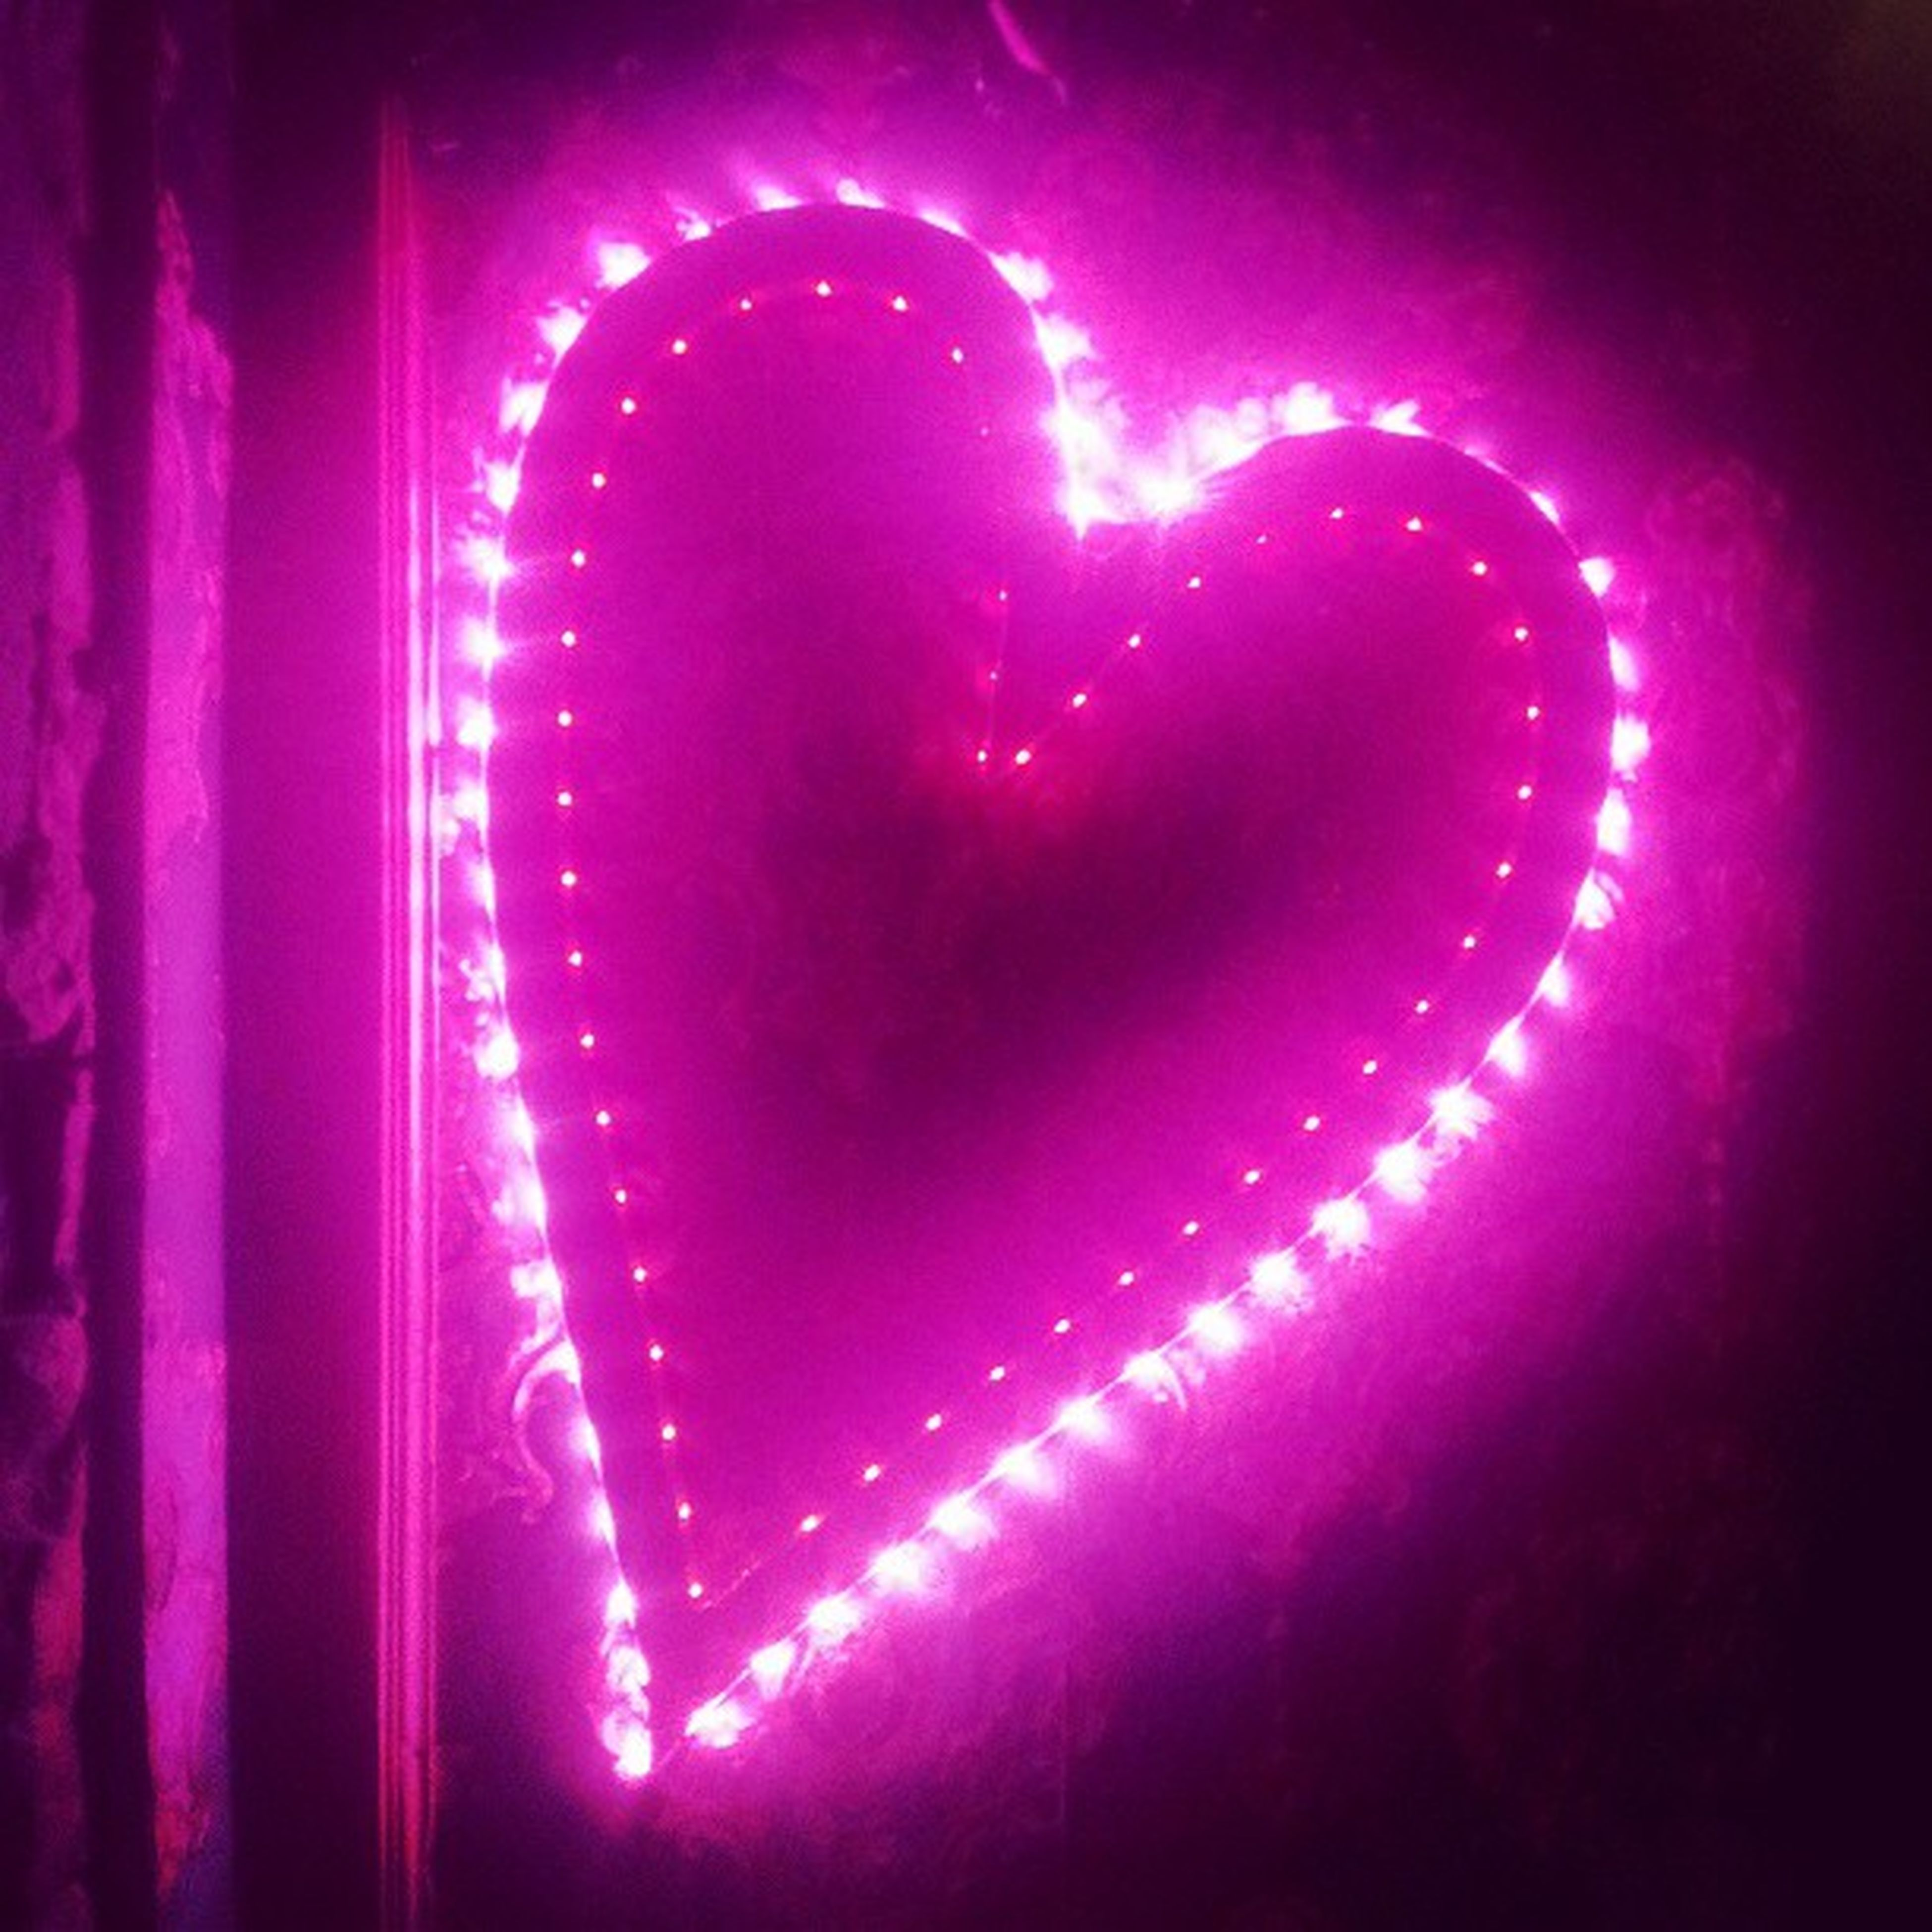 red, indoors, night, illuminated, close-up, pink color, abstract, no people, purple, light - natural phenomenon, glowing, full frame, dark, auto post production filter, ideas, backgrounds, pattern, vibrant color, lighting equipment, heart shape